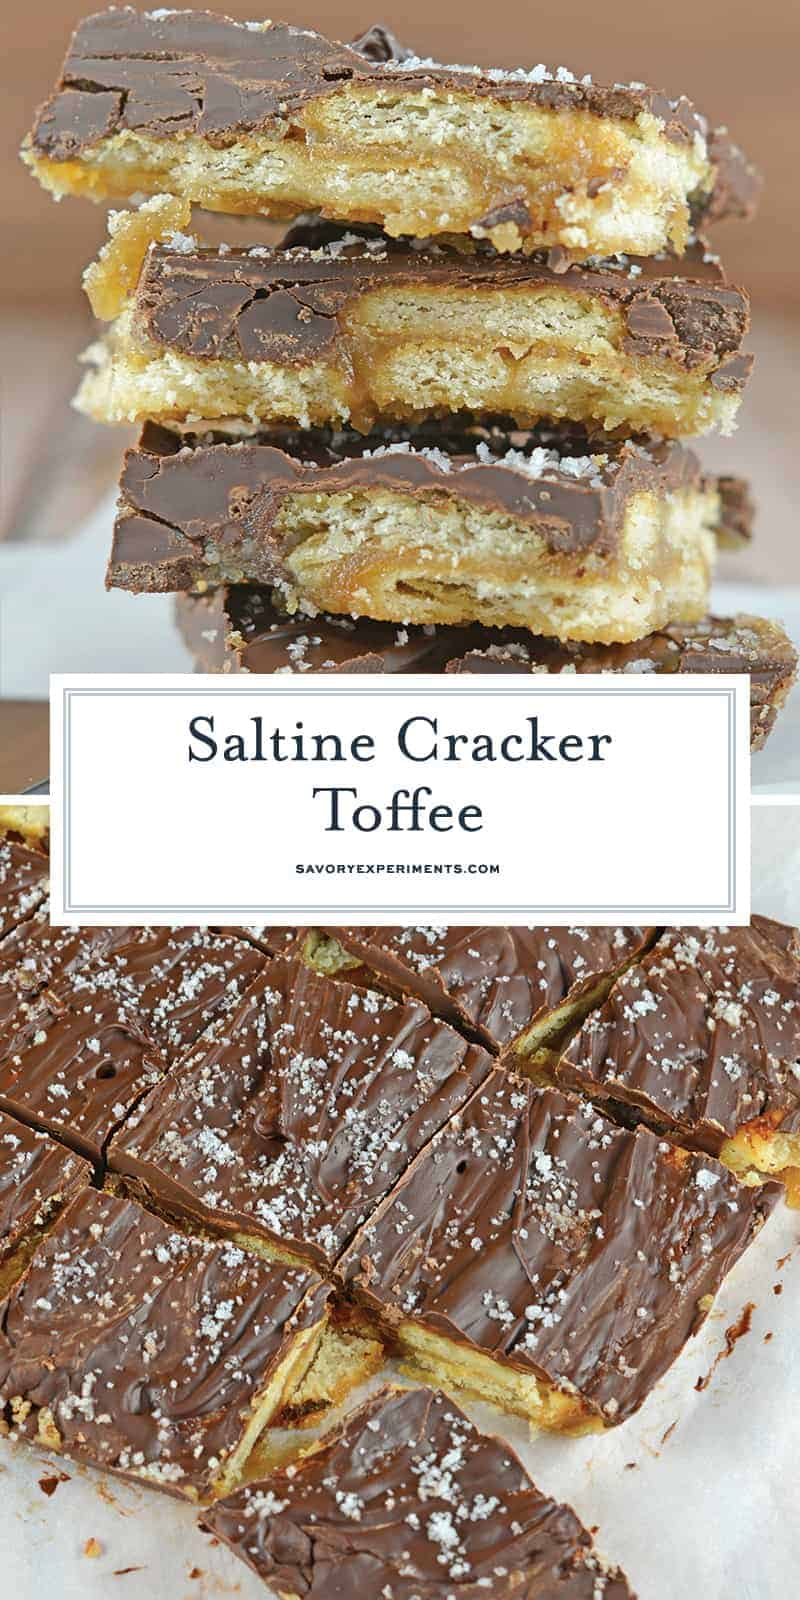 Saltine Cracker Toffee is a classic butter toffee on buttery Ritz crackers and topped with chocolate. Make this classic holiday treat in 20 minutes! #buttertoffeerecipe #saltinecrackertoffee www.savoryexperiments.com